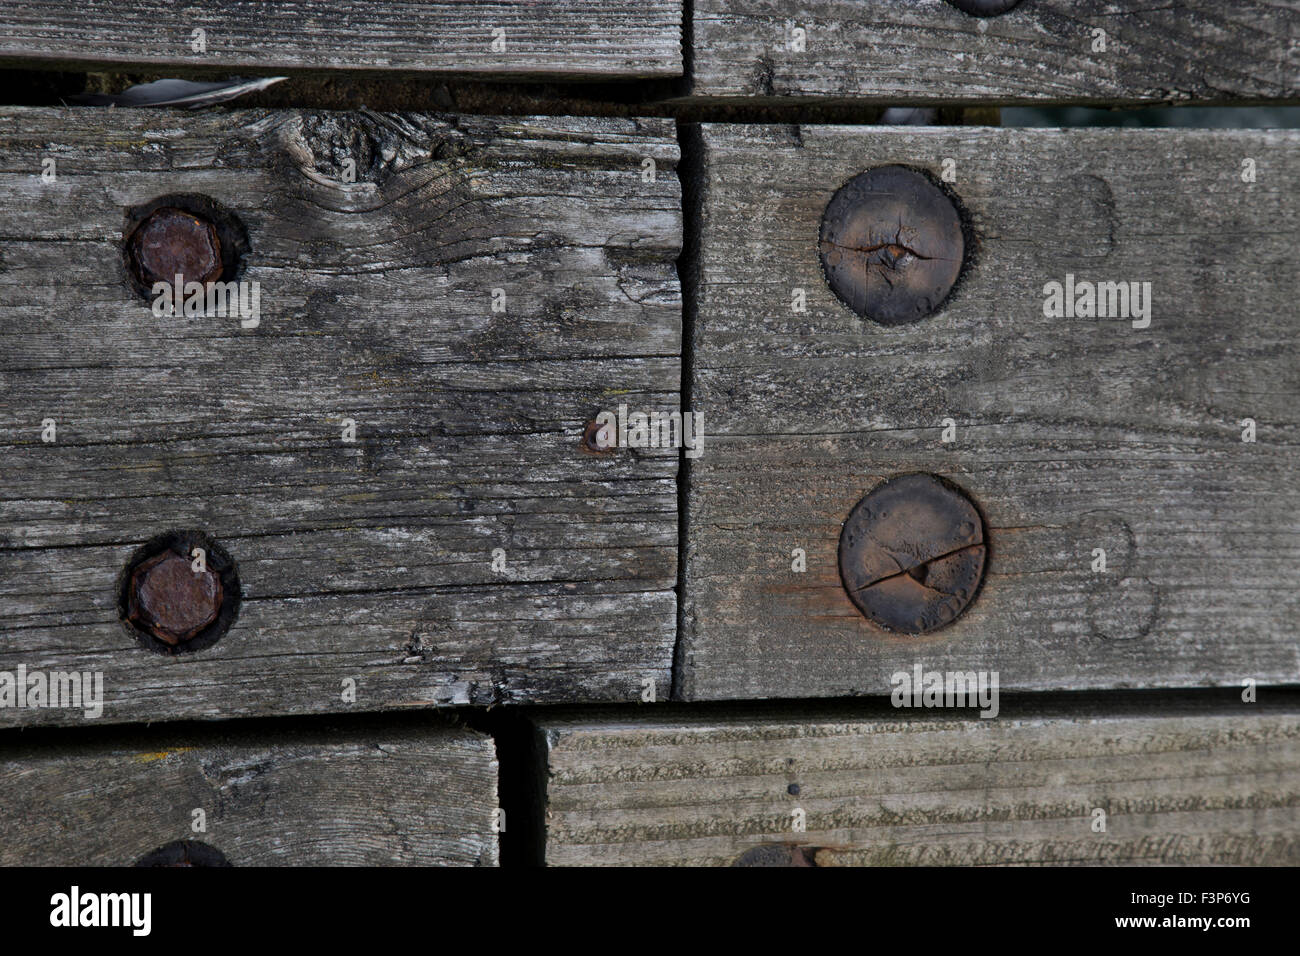 Wooden weathered boards held together with a mixture of metal and wooden fittings Stock Photo